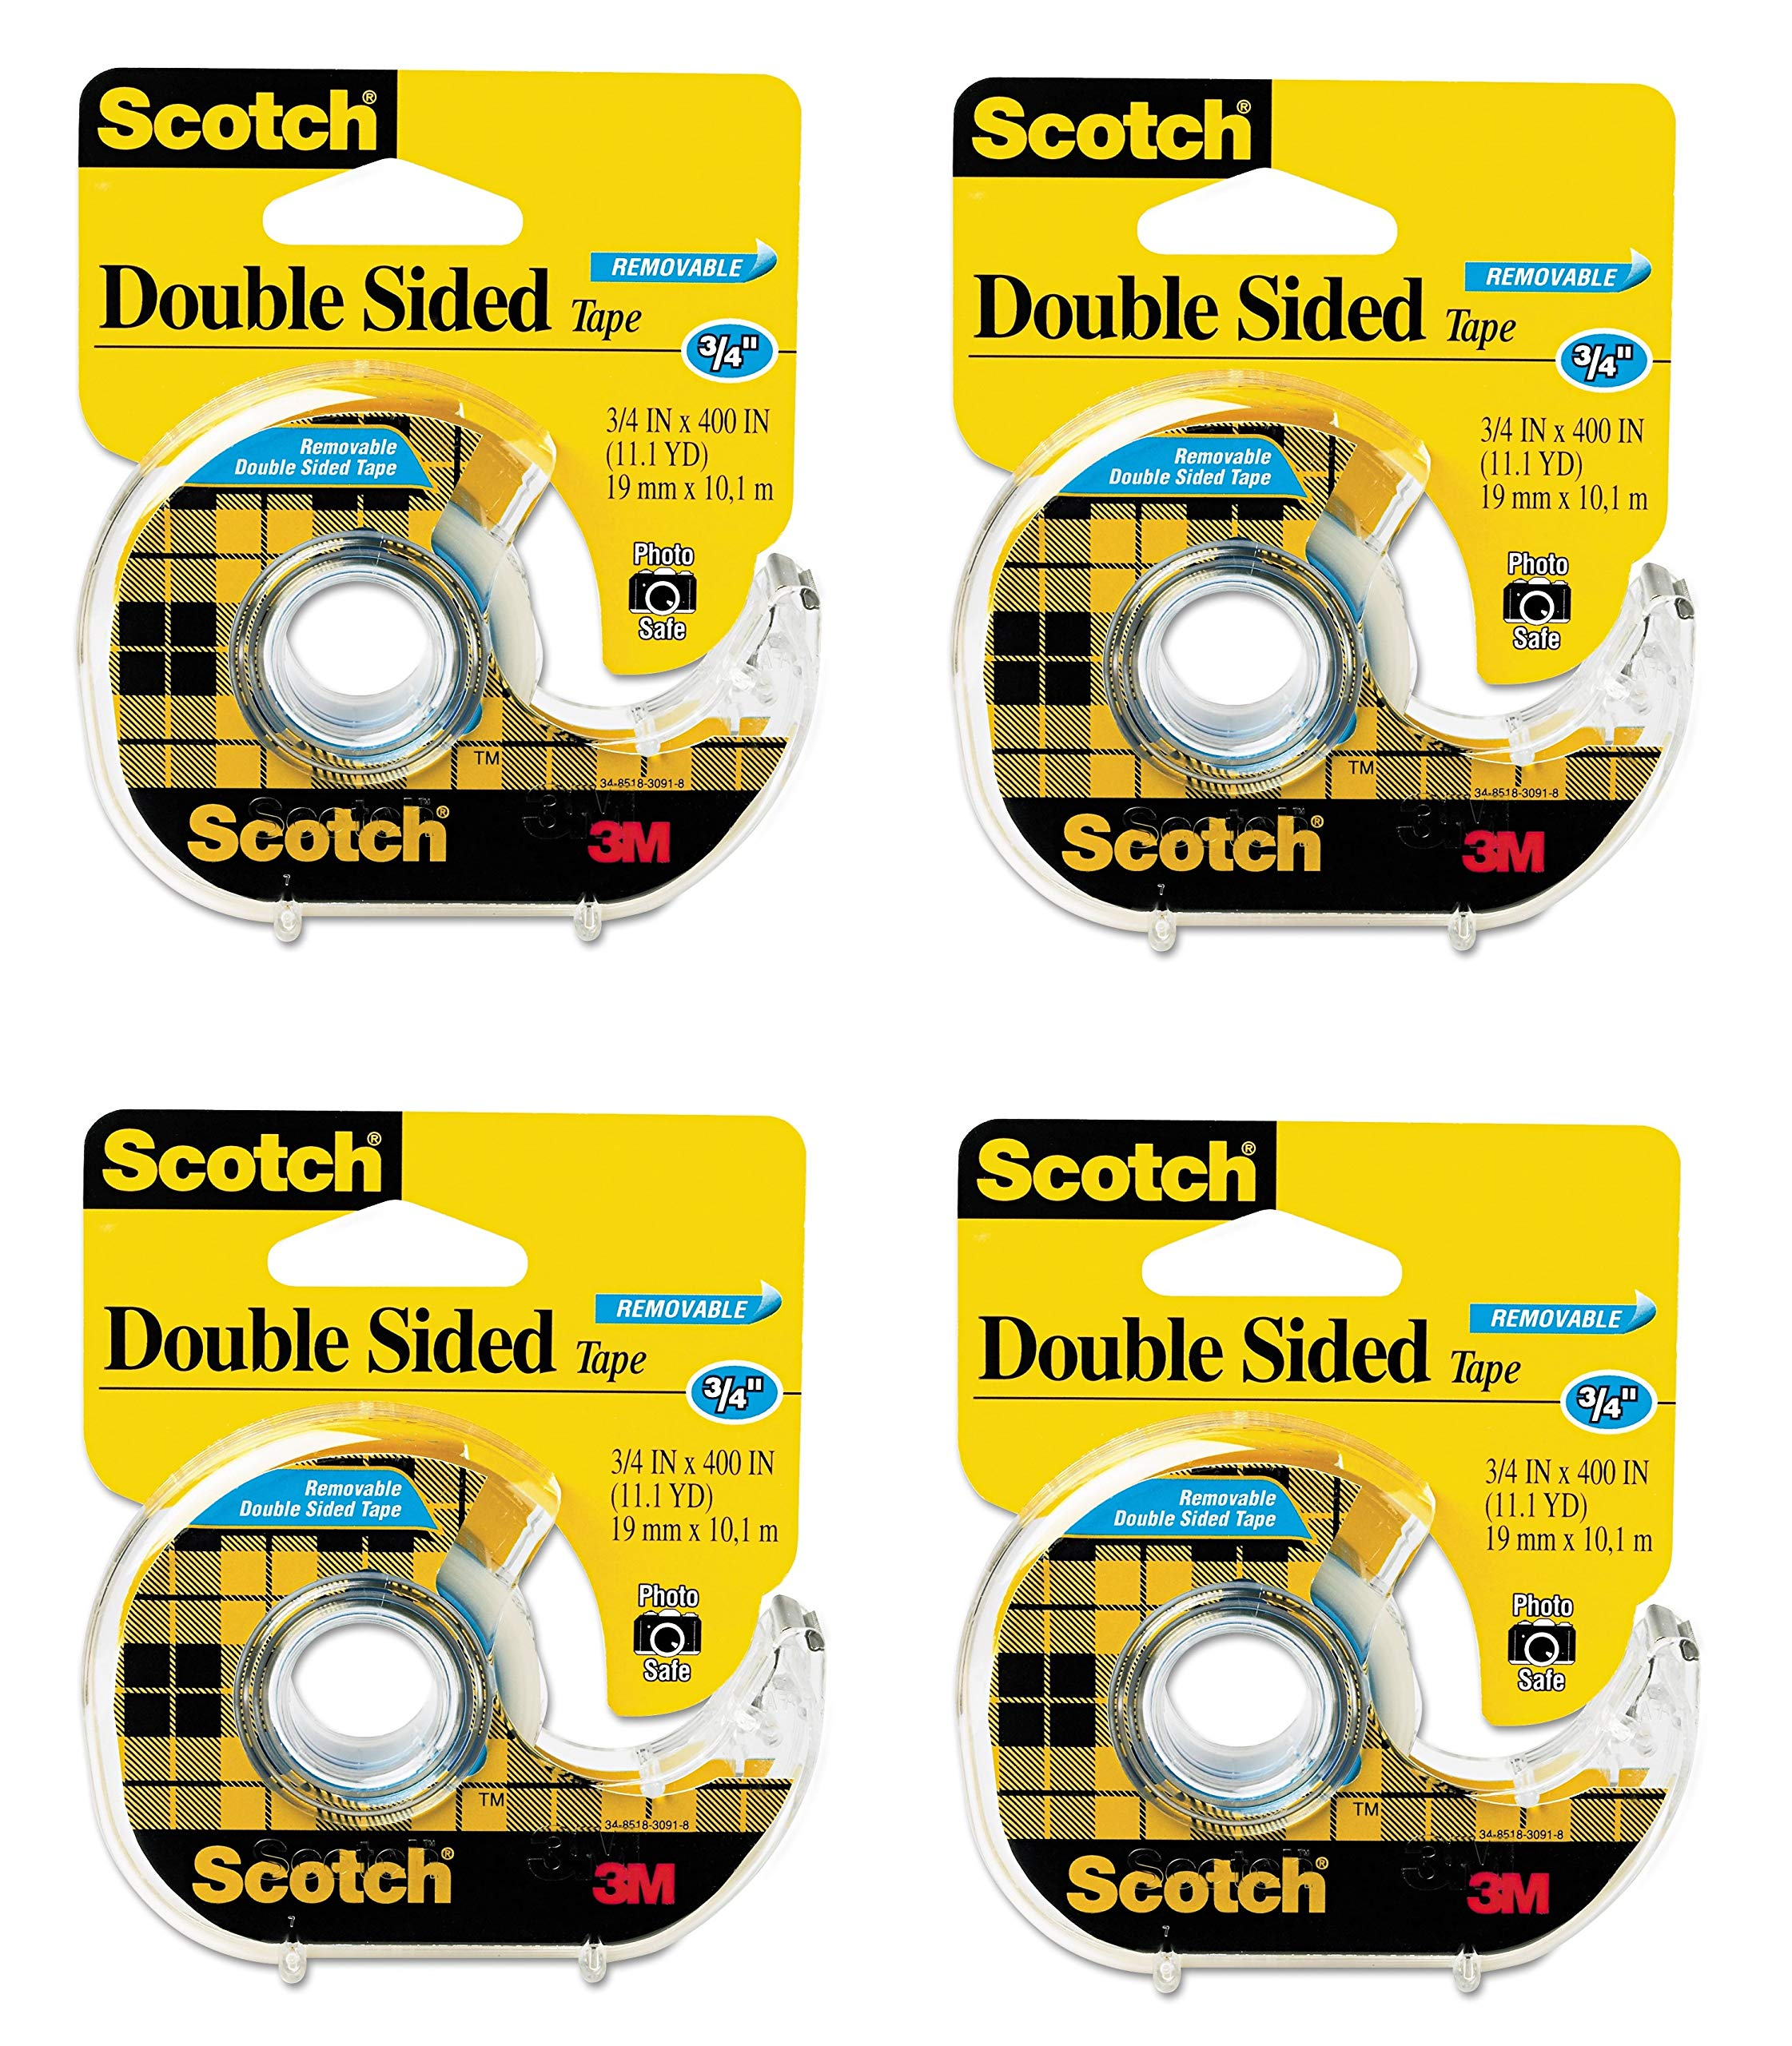 Scotch Double Sided Removable Tape, Long-Lasting, Trusted Favorite, 3/4 x 400 Inches, 4 Dispensered Roll (667) by Scotch Brand